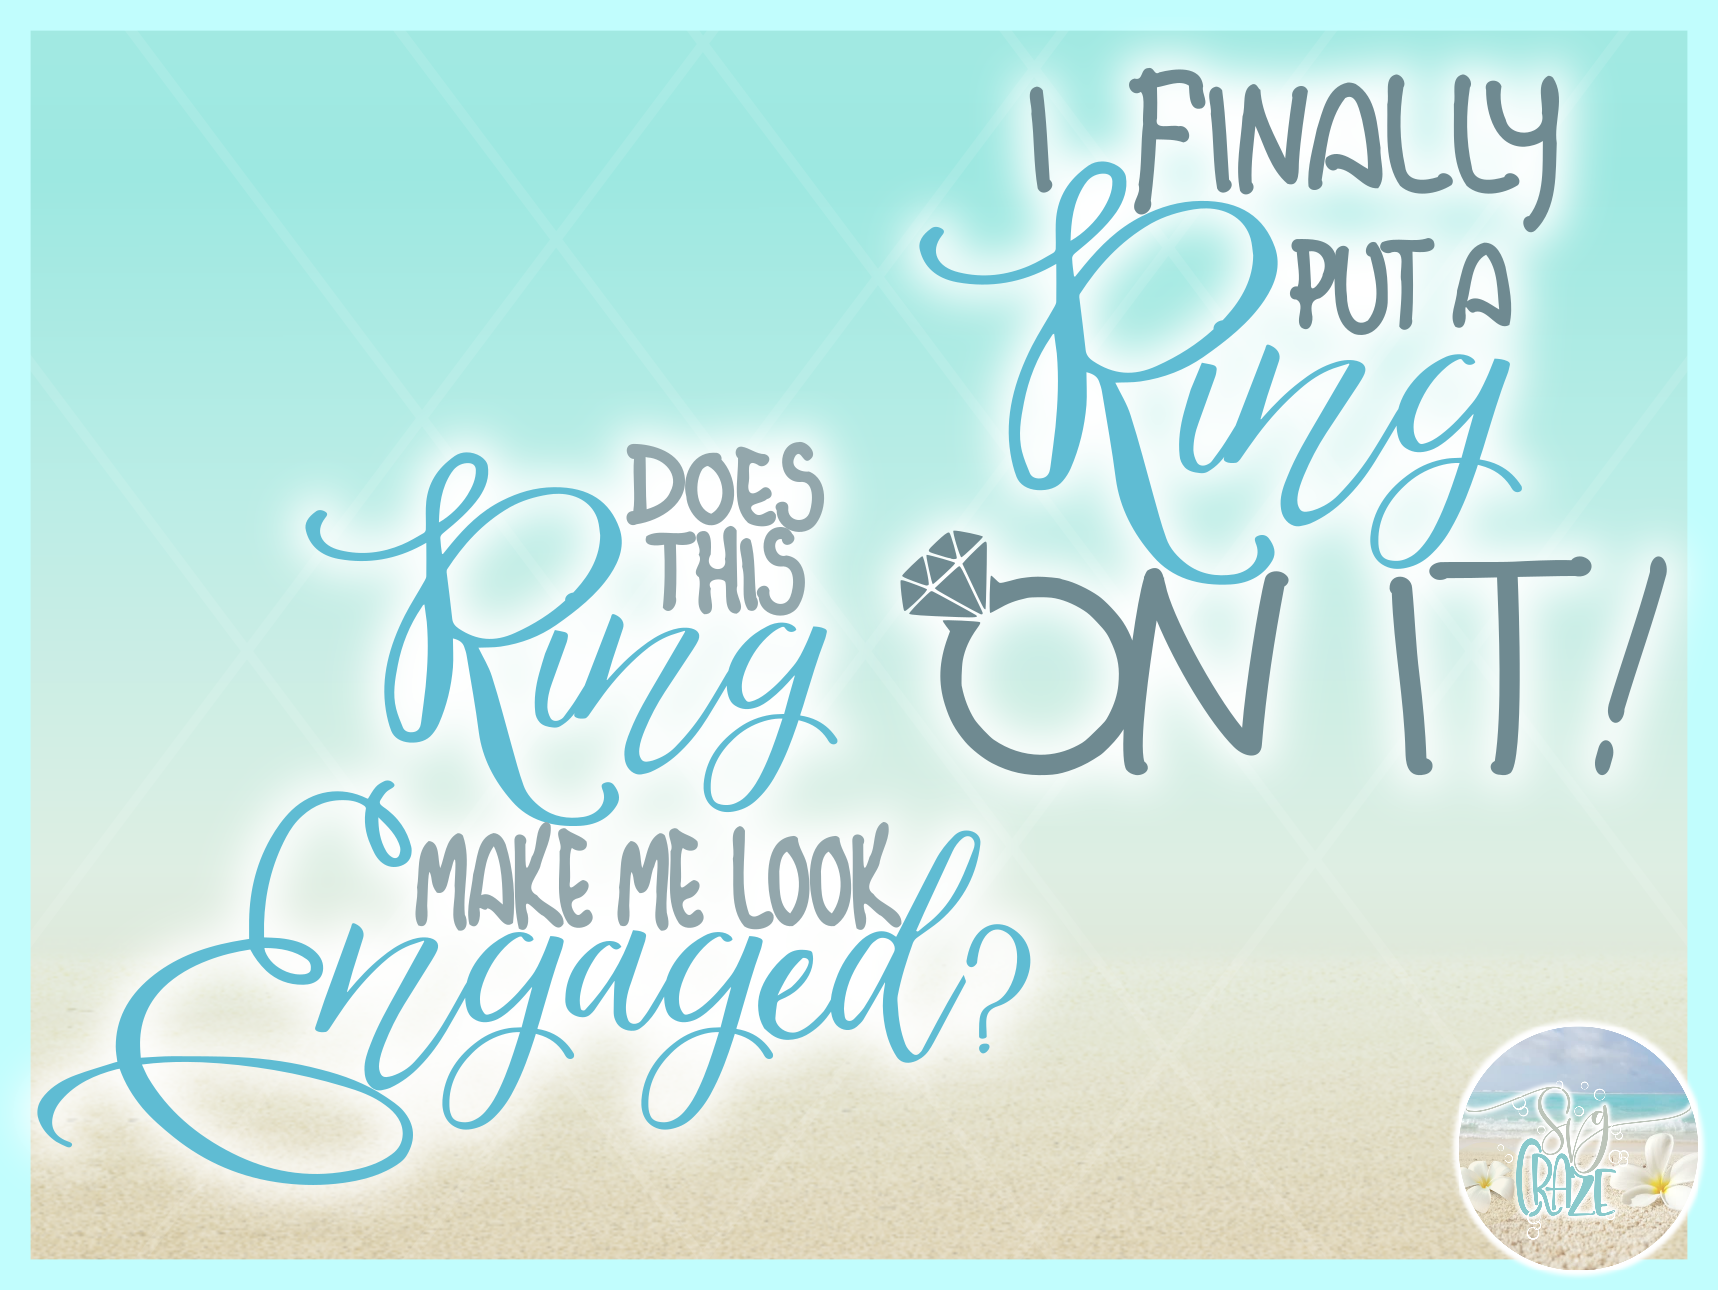 Wedding Vows Rings Engagement Marriage Bride Groom SVG example image 3